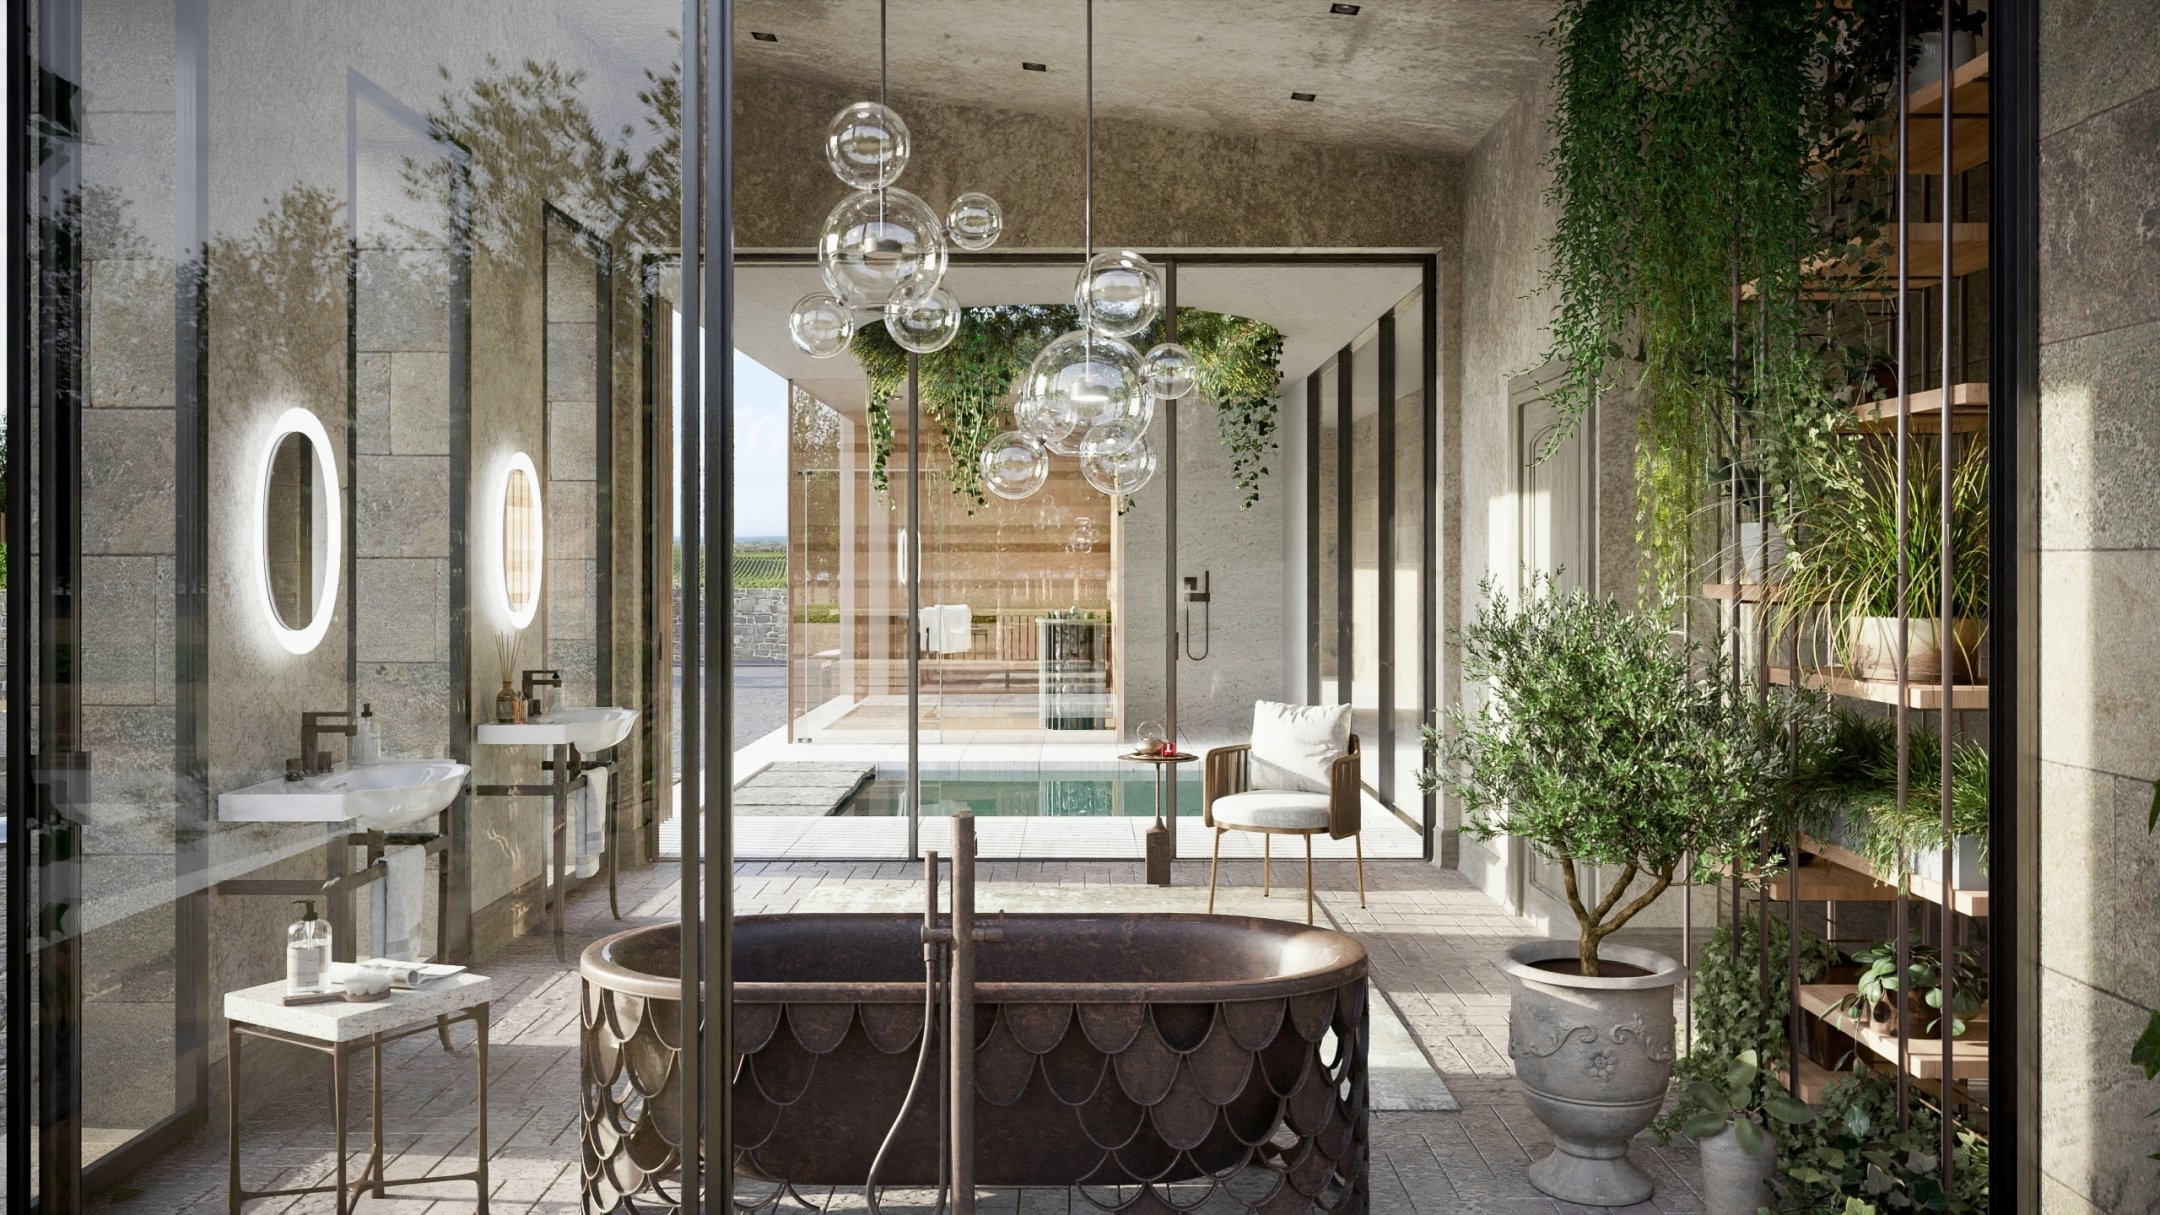 3D Architecture Renders: a Stylish Bathroom